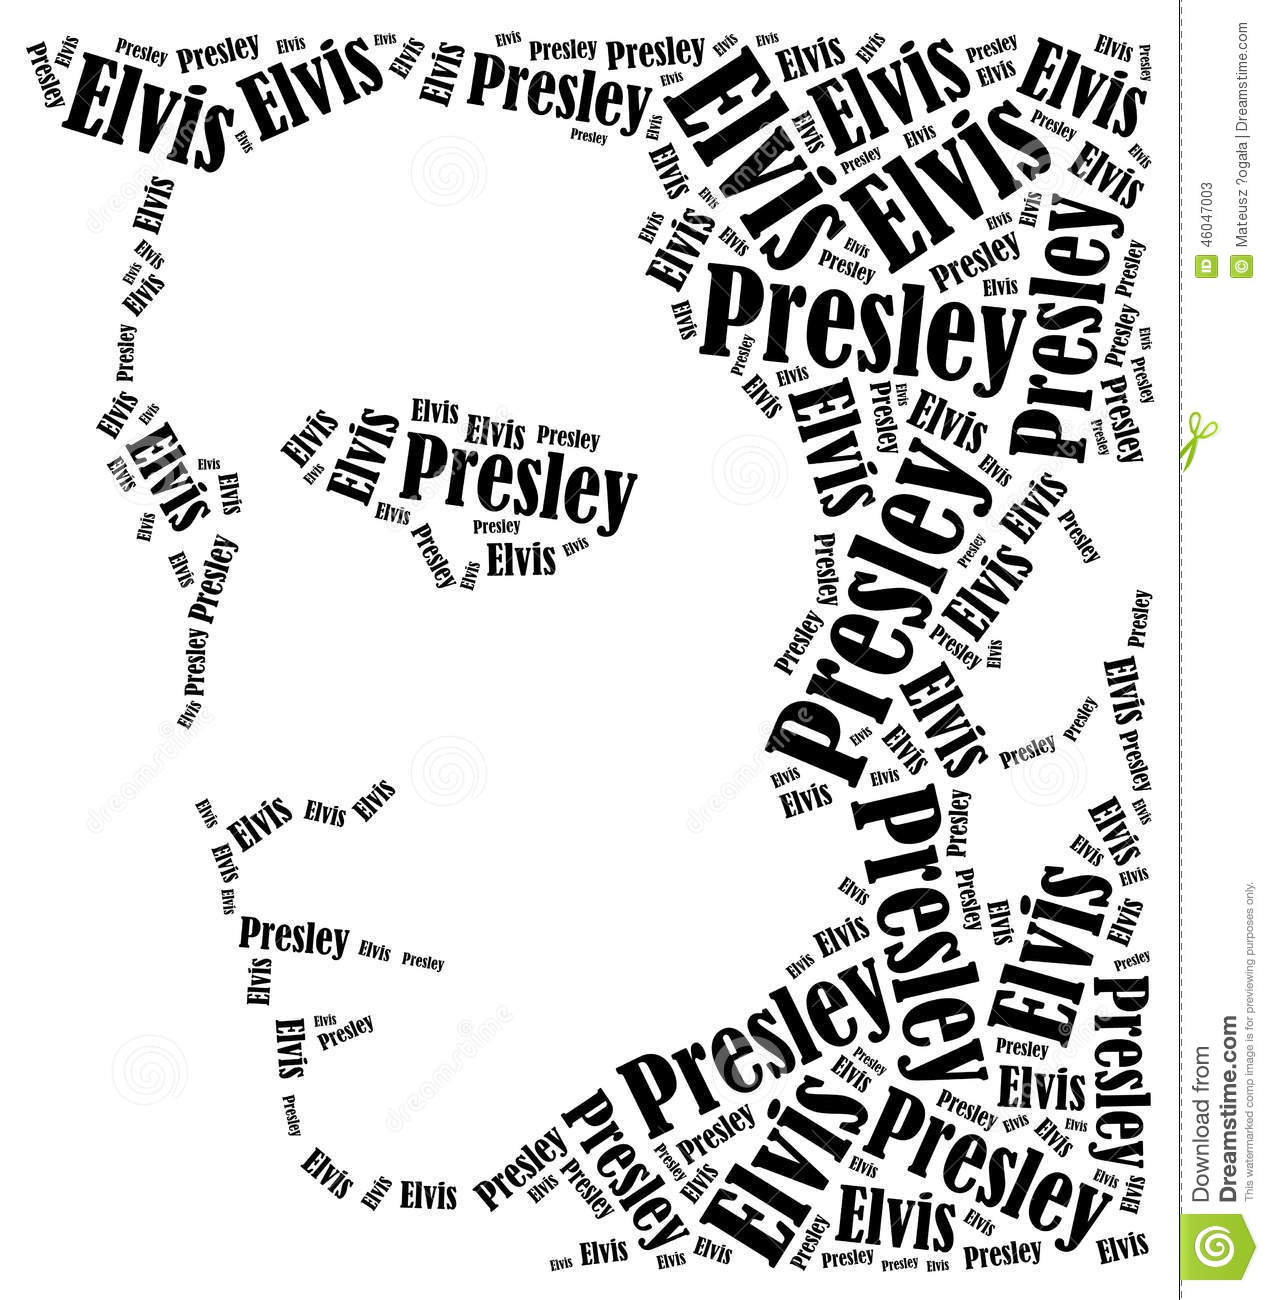 Elvis Presley Portrait Word Cloud Illustration Editorial